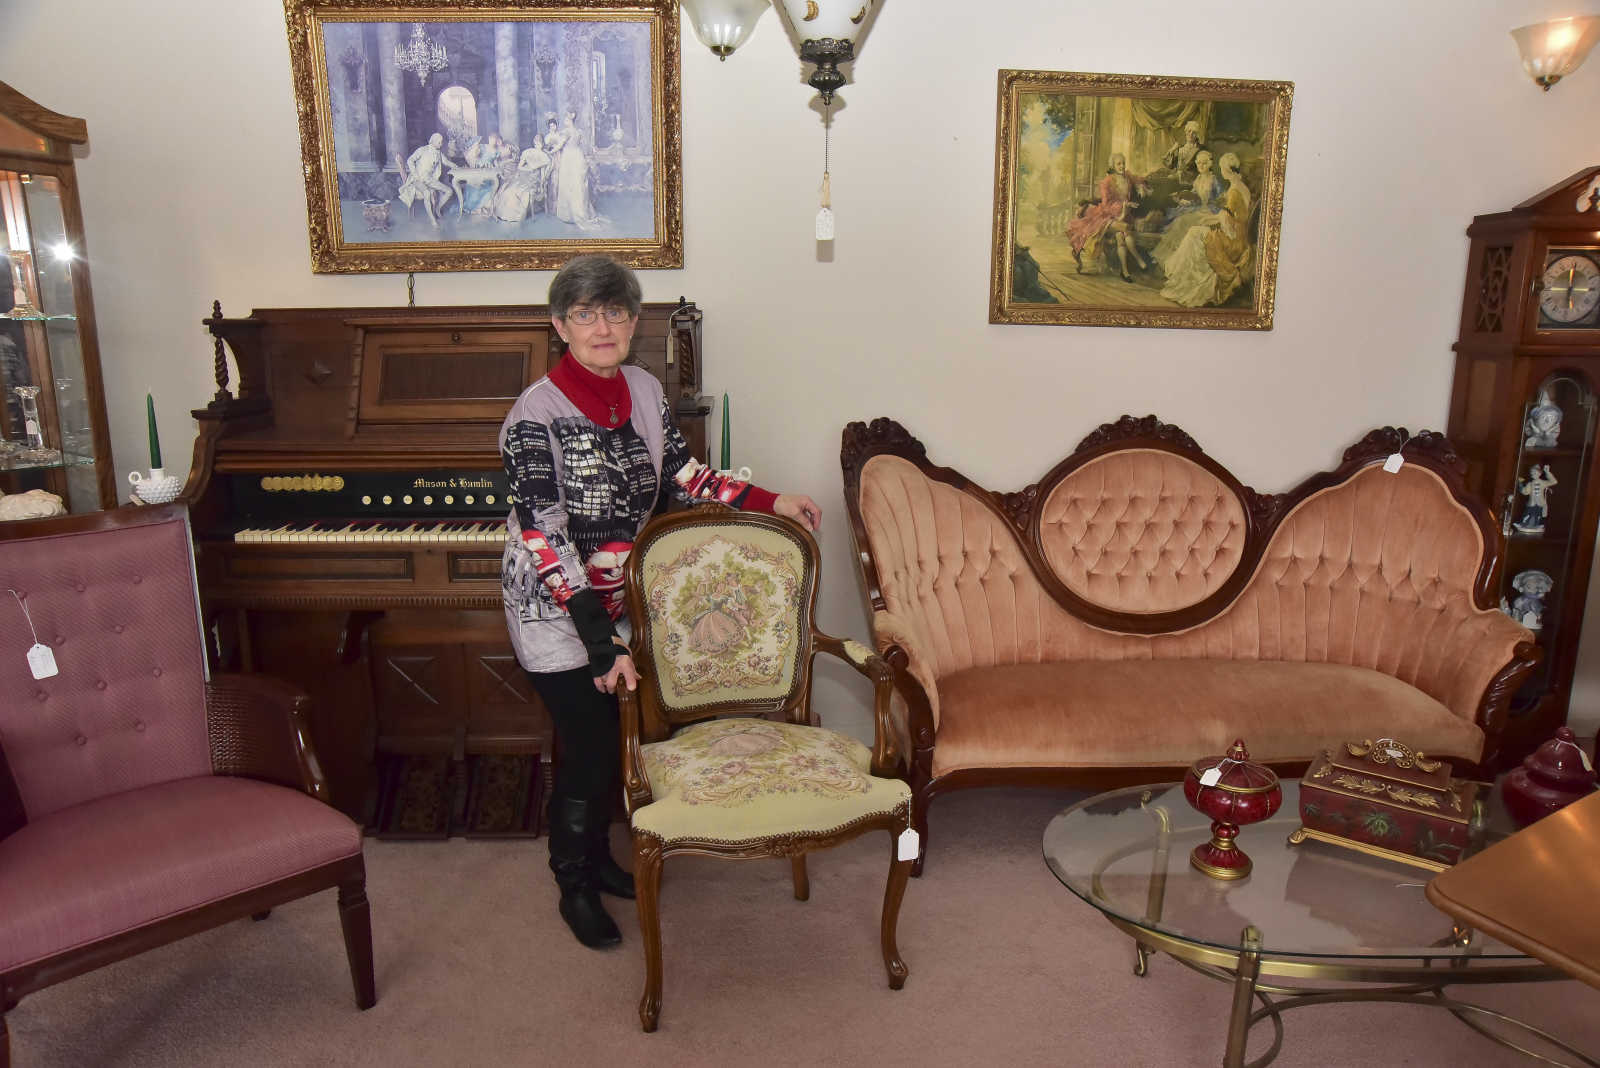 owner of Advance Wise Buys  poses for a photo in her store Friday   March 17  2017 in Advance  Advance Wise Buys is an antique shop along with  furniture. Photo gallery  Advance Wise Buys  4 14 17    Southeast Missourian